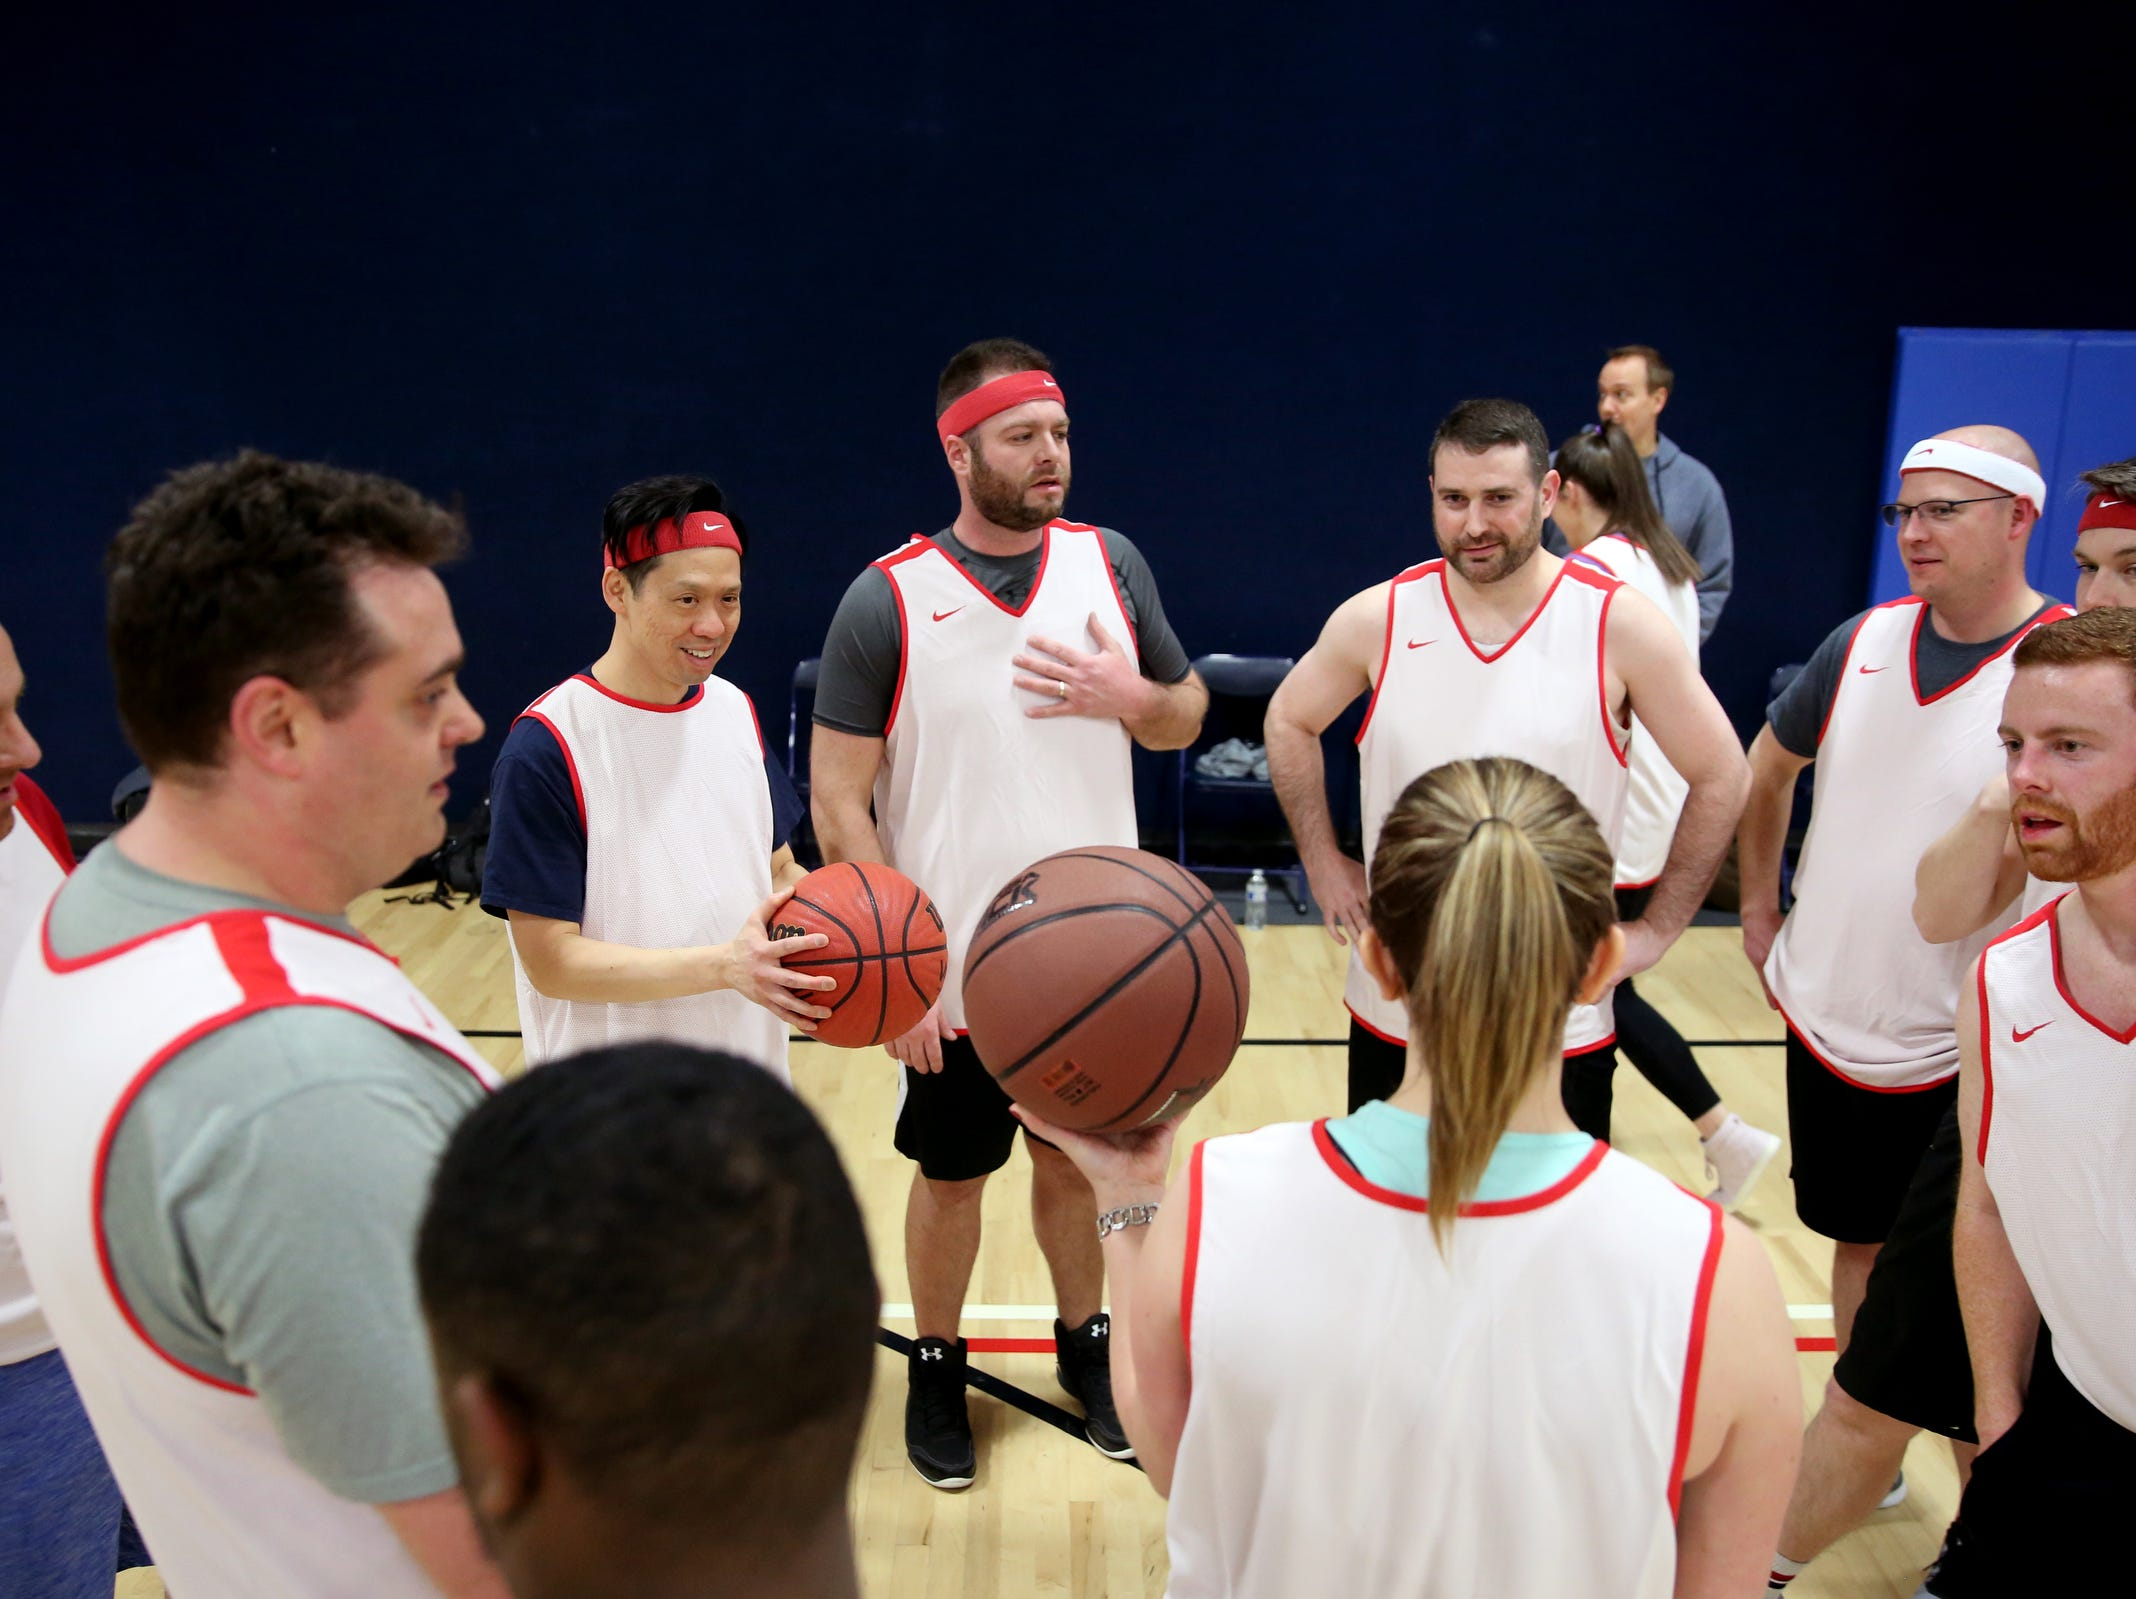 A Senate team huddles together before the start of the second annual House vs. Senate charity basketball tournament at the Boys & Girls Club in Salem on March 13, 2019. The tournament raised more than $10,000 for the Oregon Alliance of Boys & Girls Clubs.